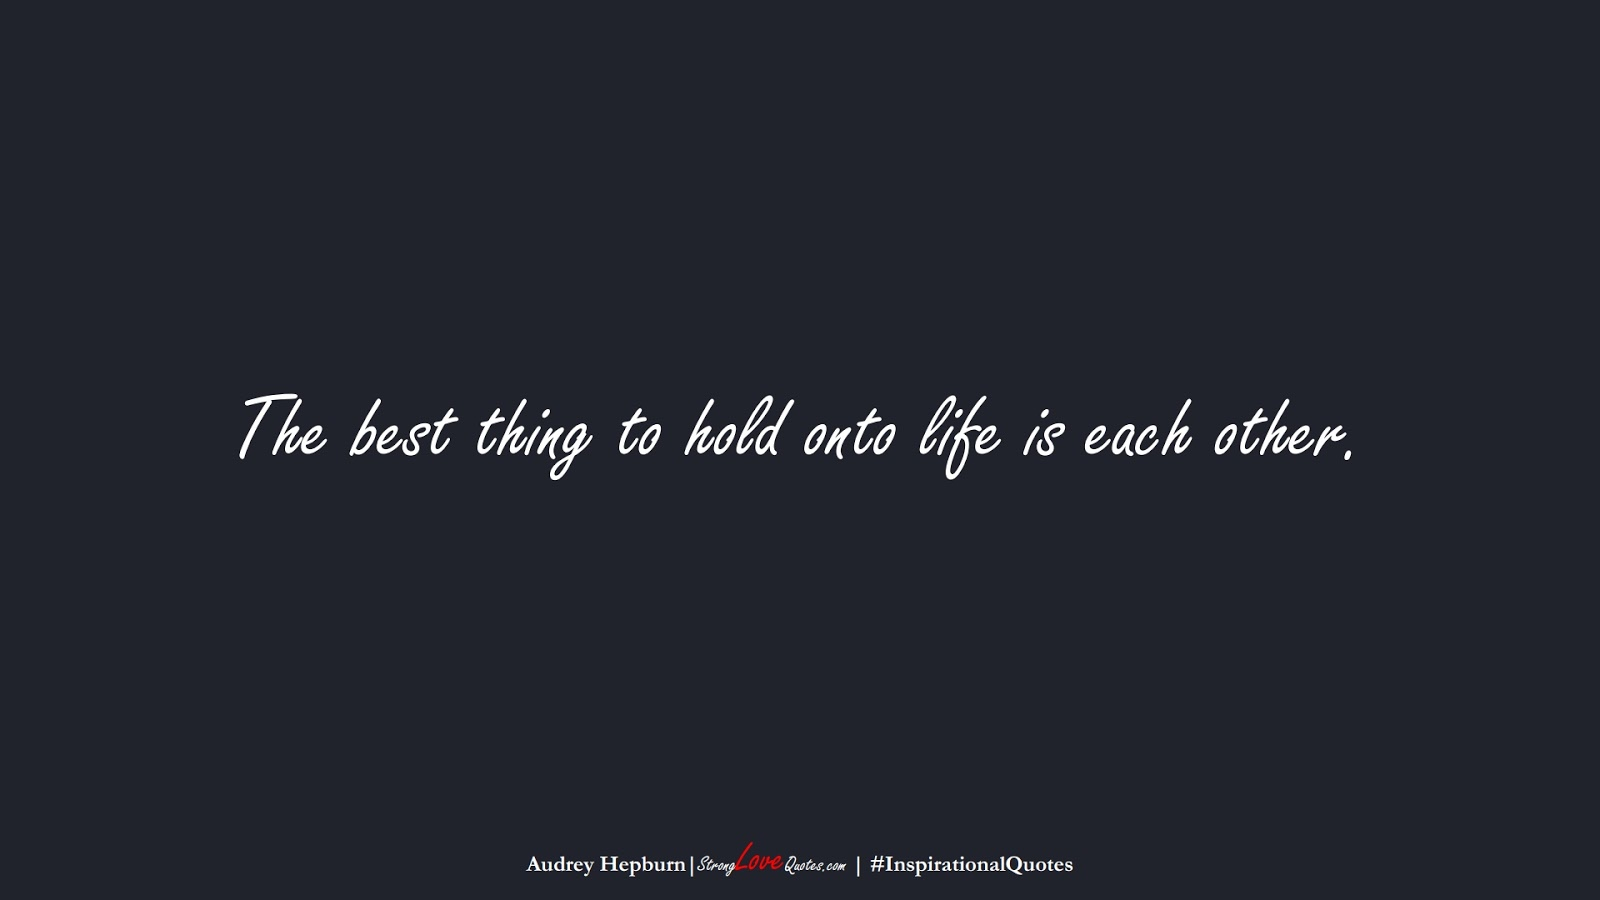 The best thing to hold onto life is each other. (Audrey Hepburn);  #InspirationalQuotes